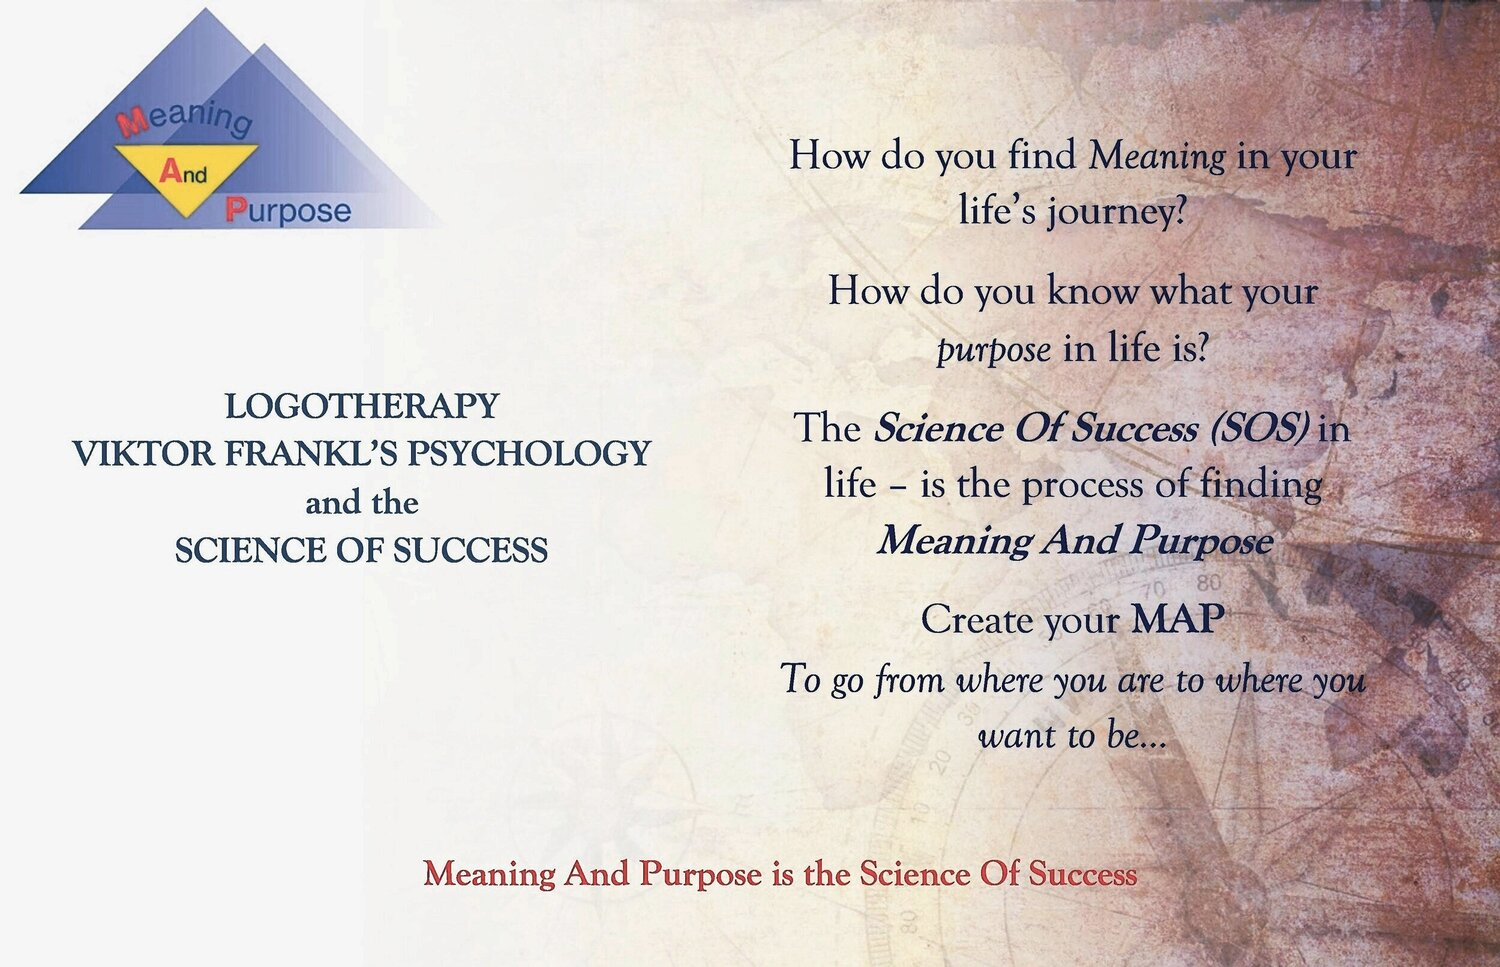 MAP: Logotherpy: Viktor Frankl's Psychology